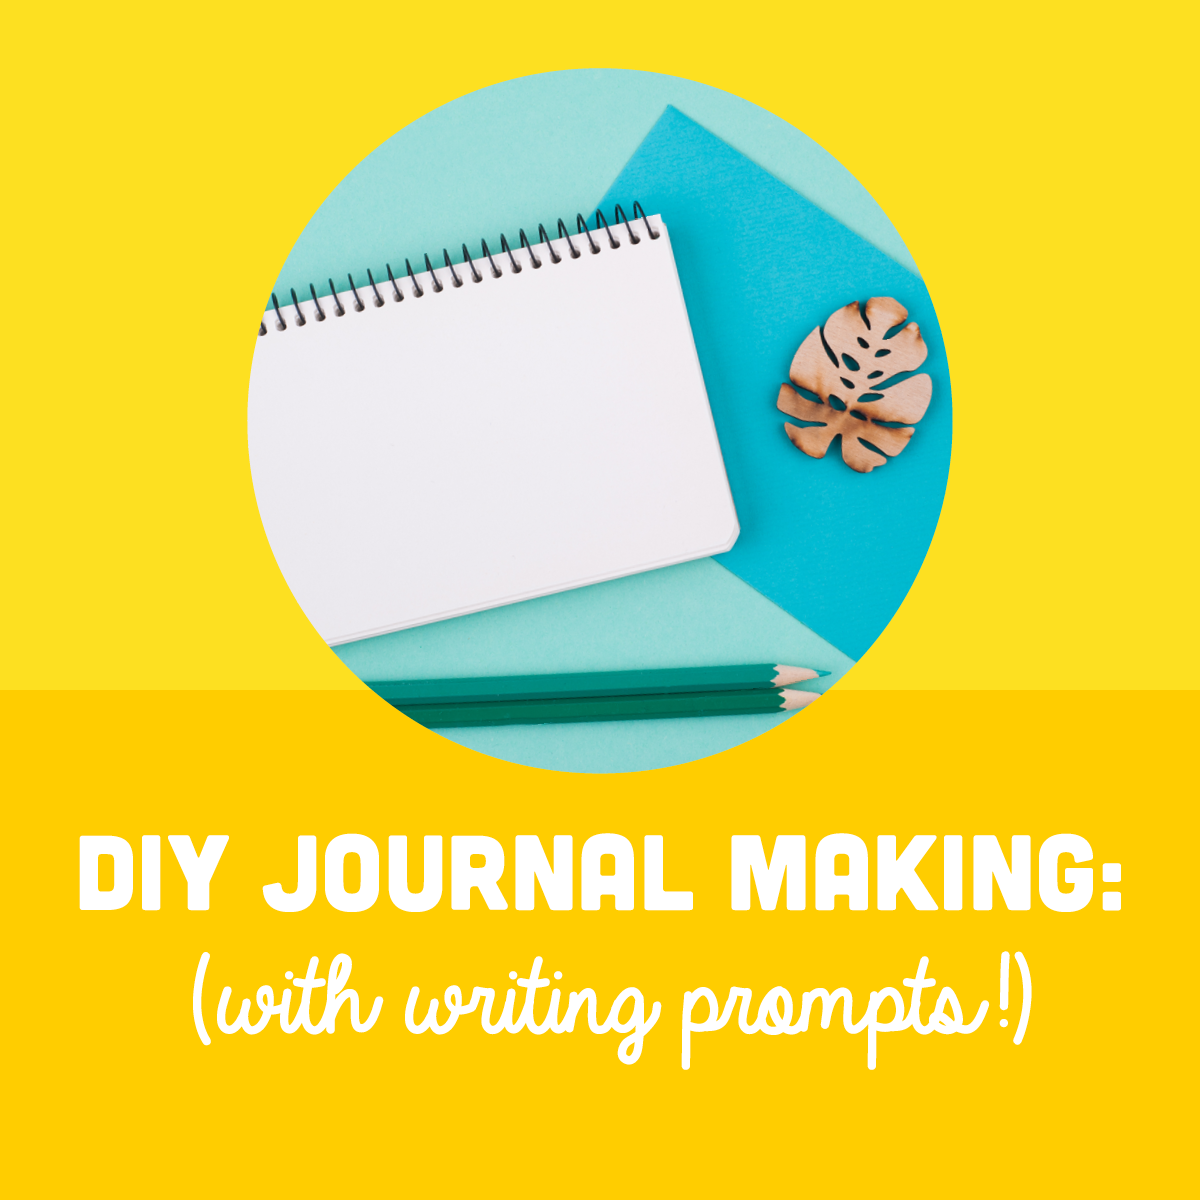 How-To DIY Journal Making at Home for Parents and Kids